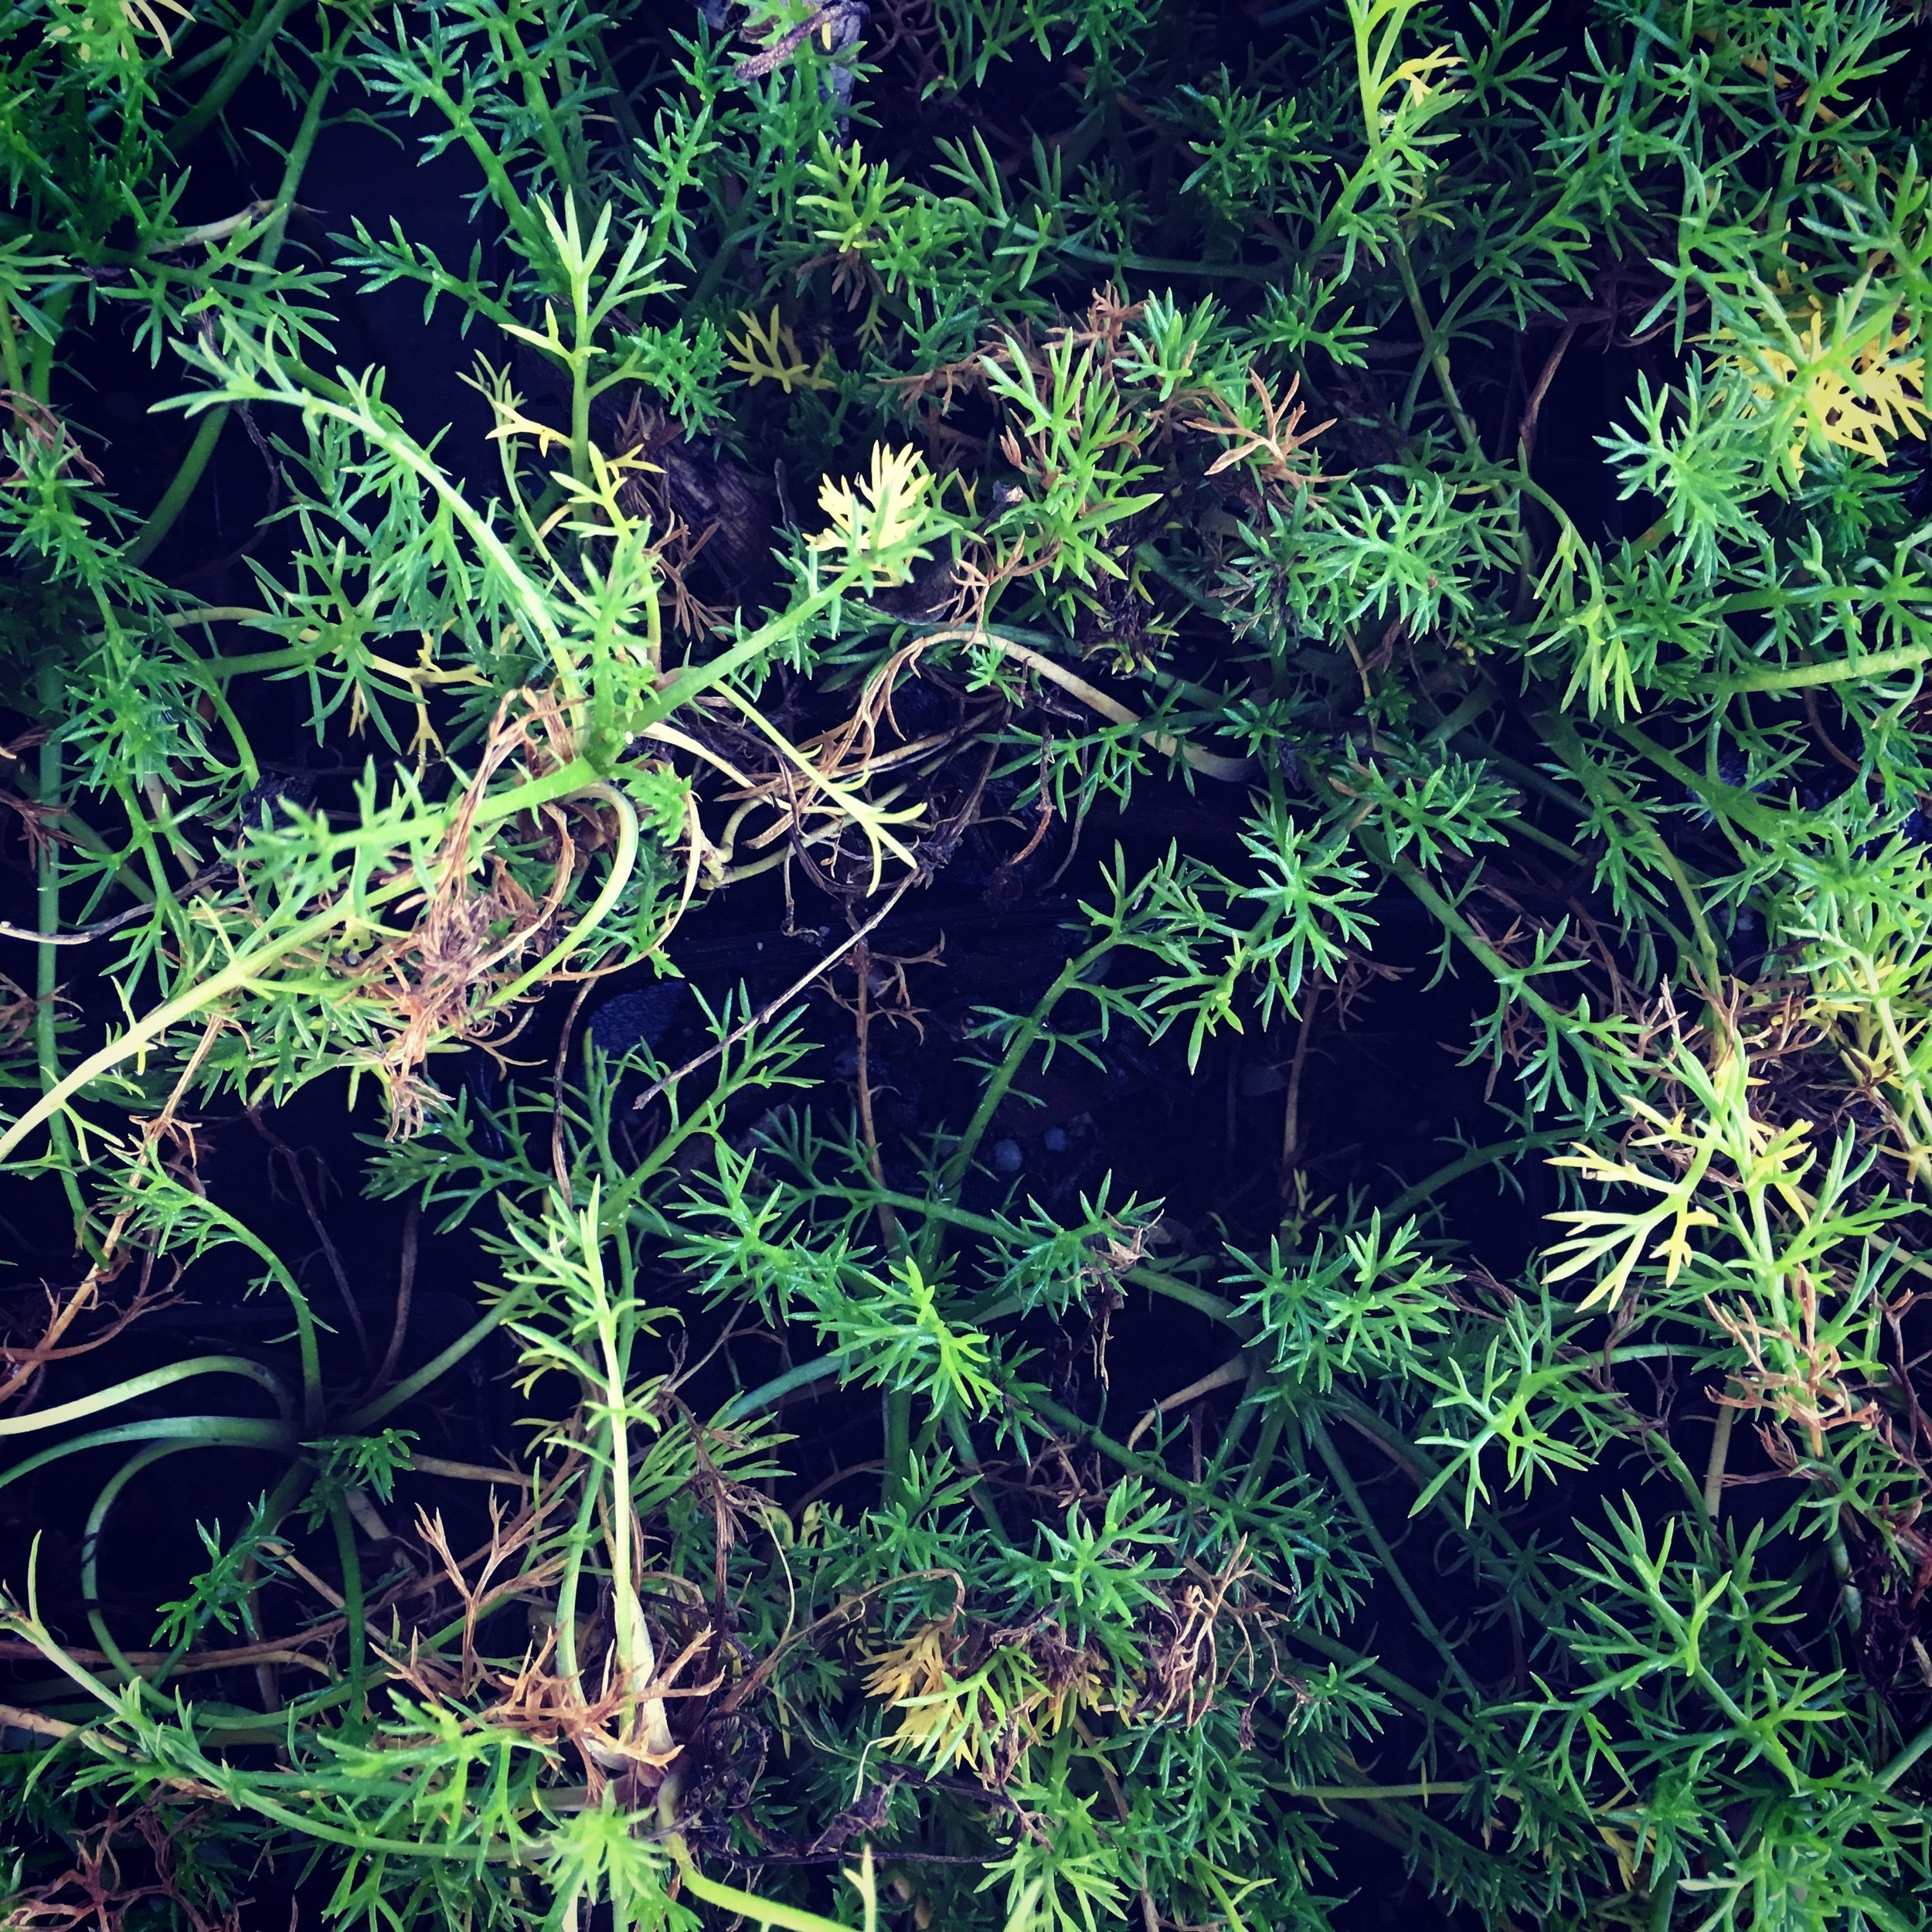 roman chamomile is a wonderful ground cover plant